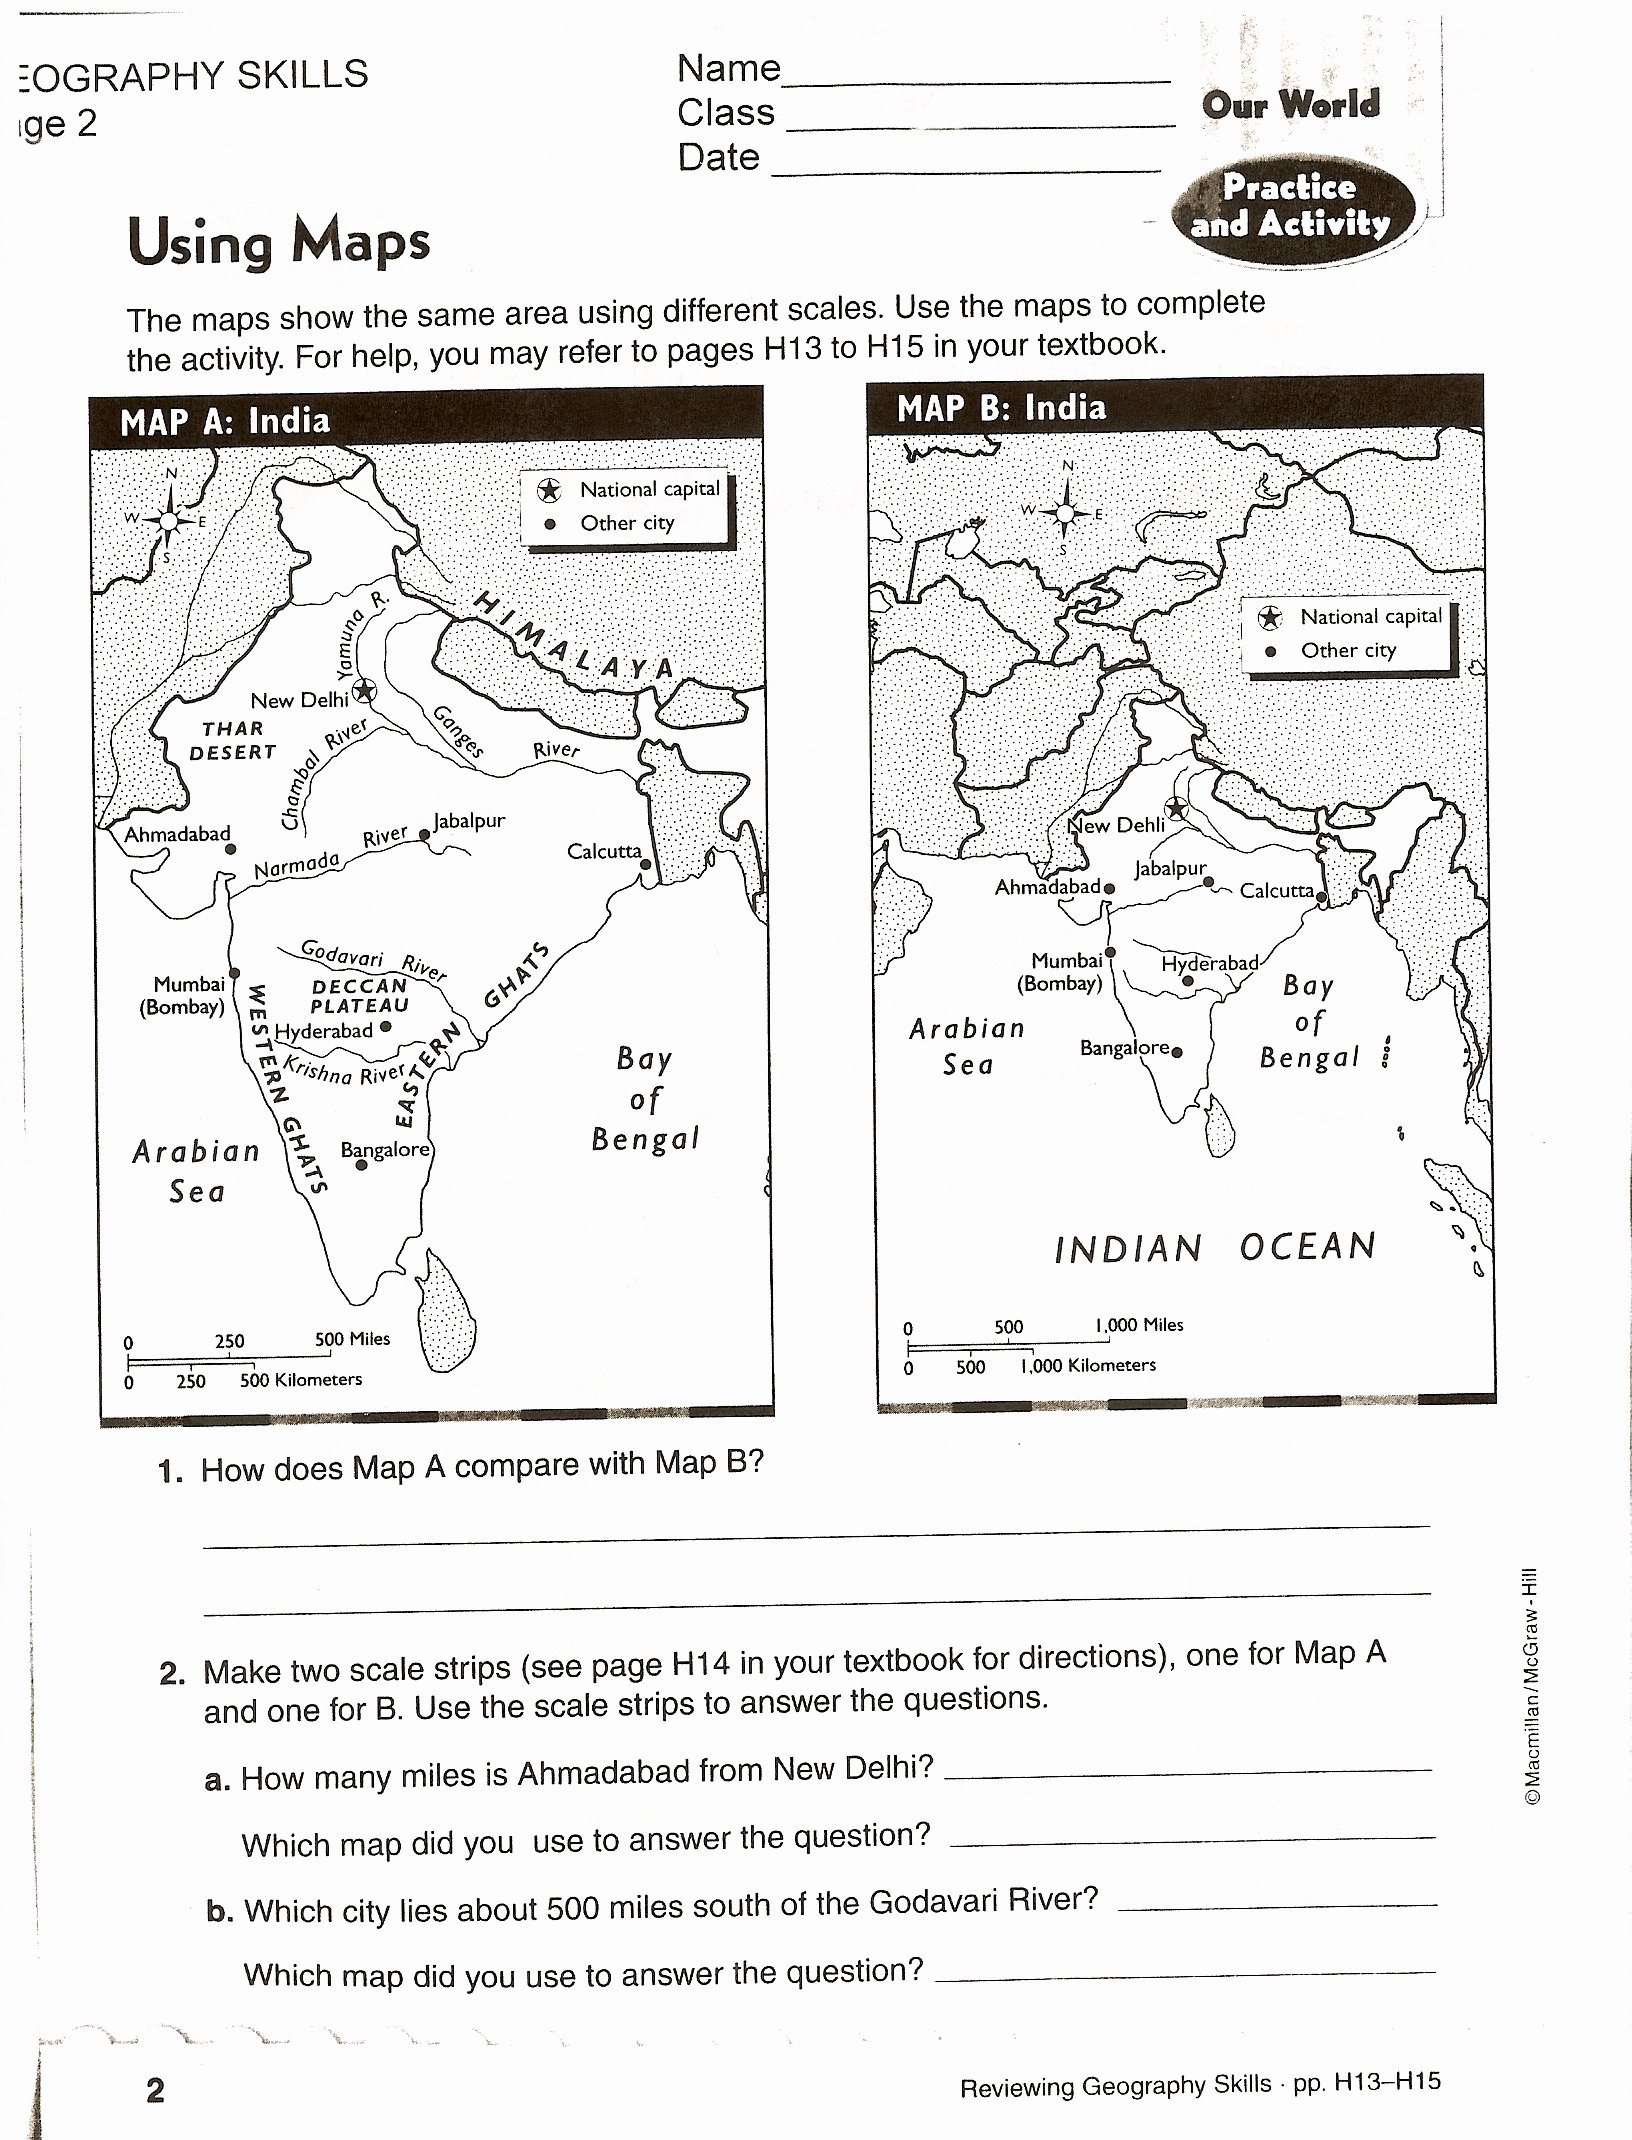 River Valley Civilizations Worksheet Answers Luxury River Valley Civilizations Worksheet Answer Key